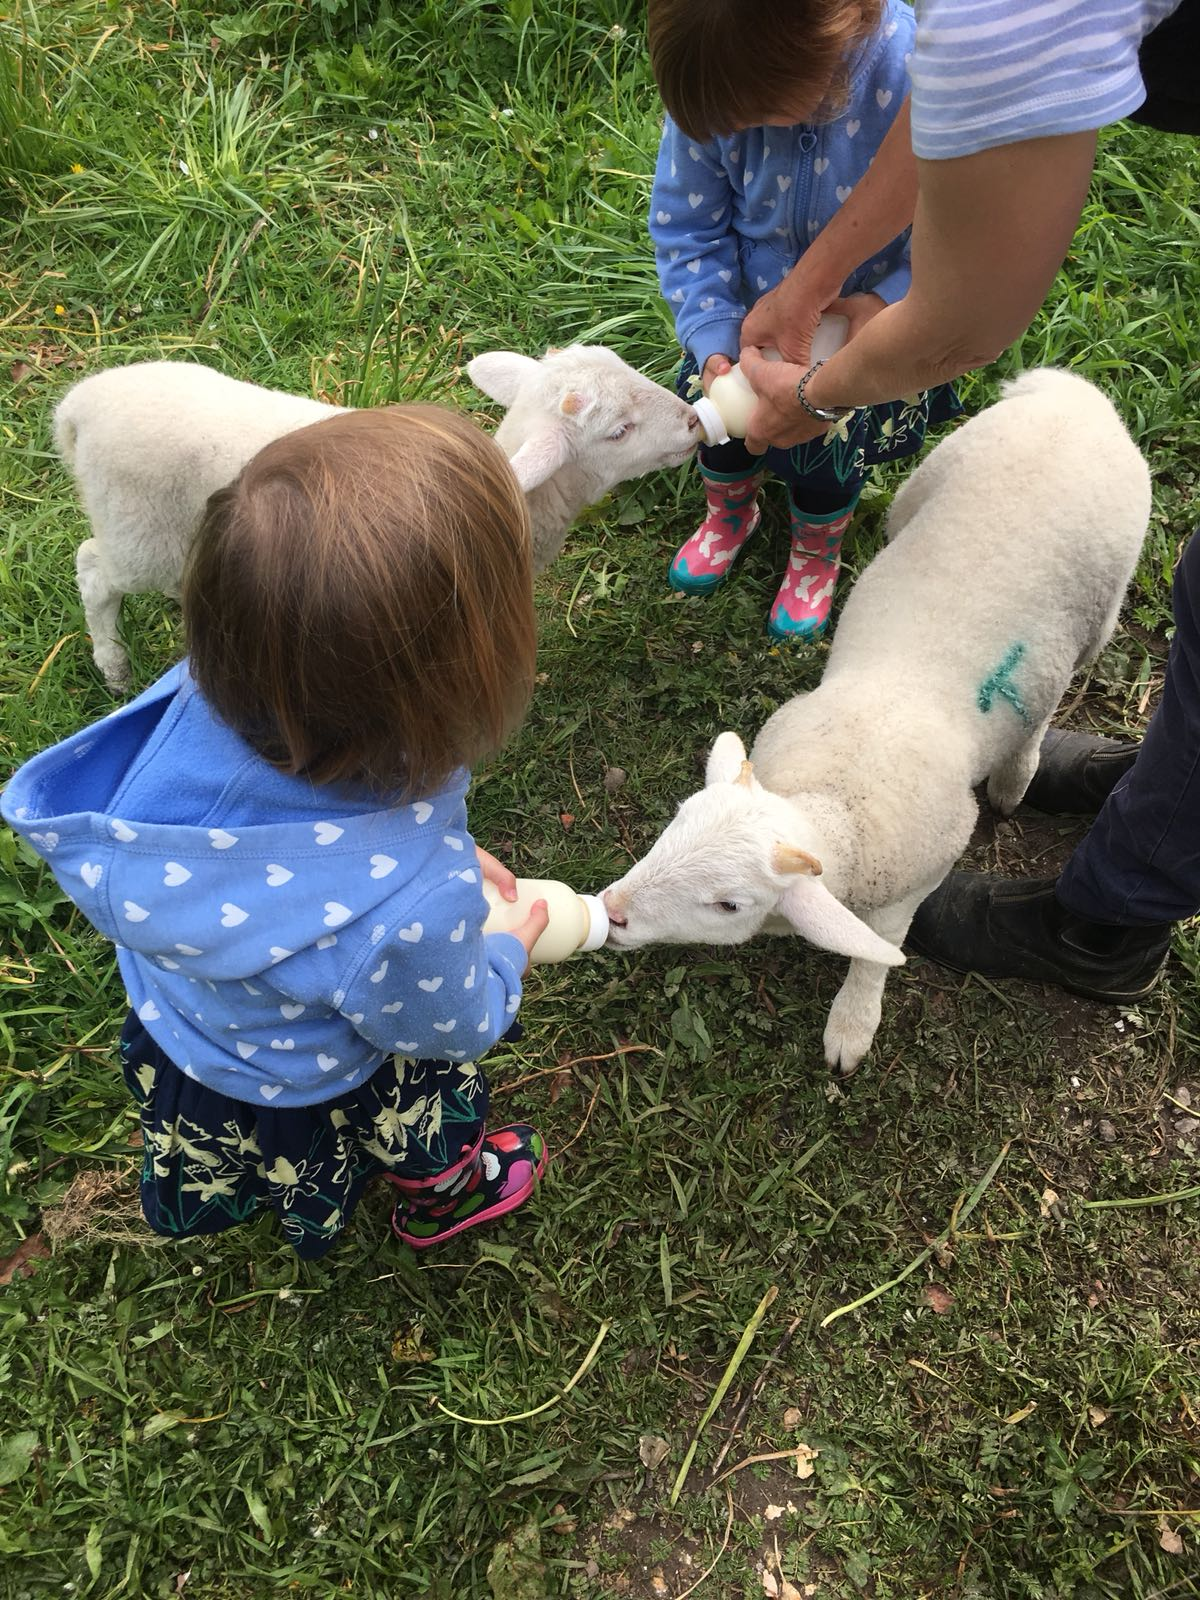 Twins feeding the lambs at Kennel farm